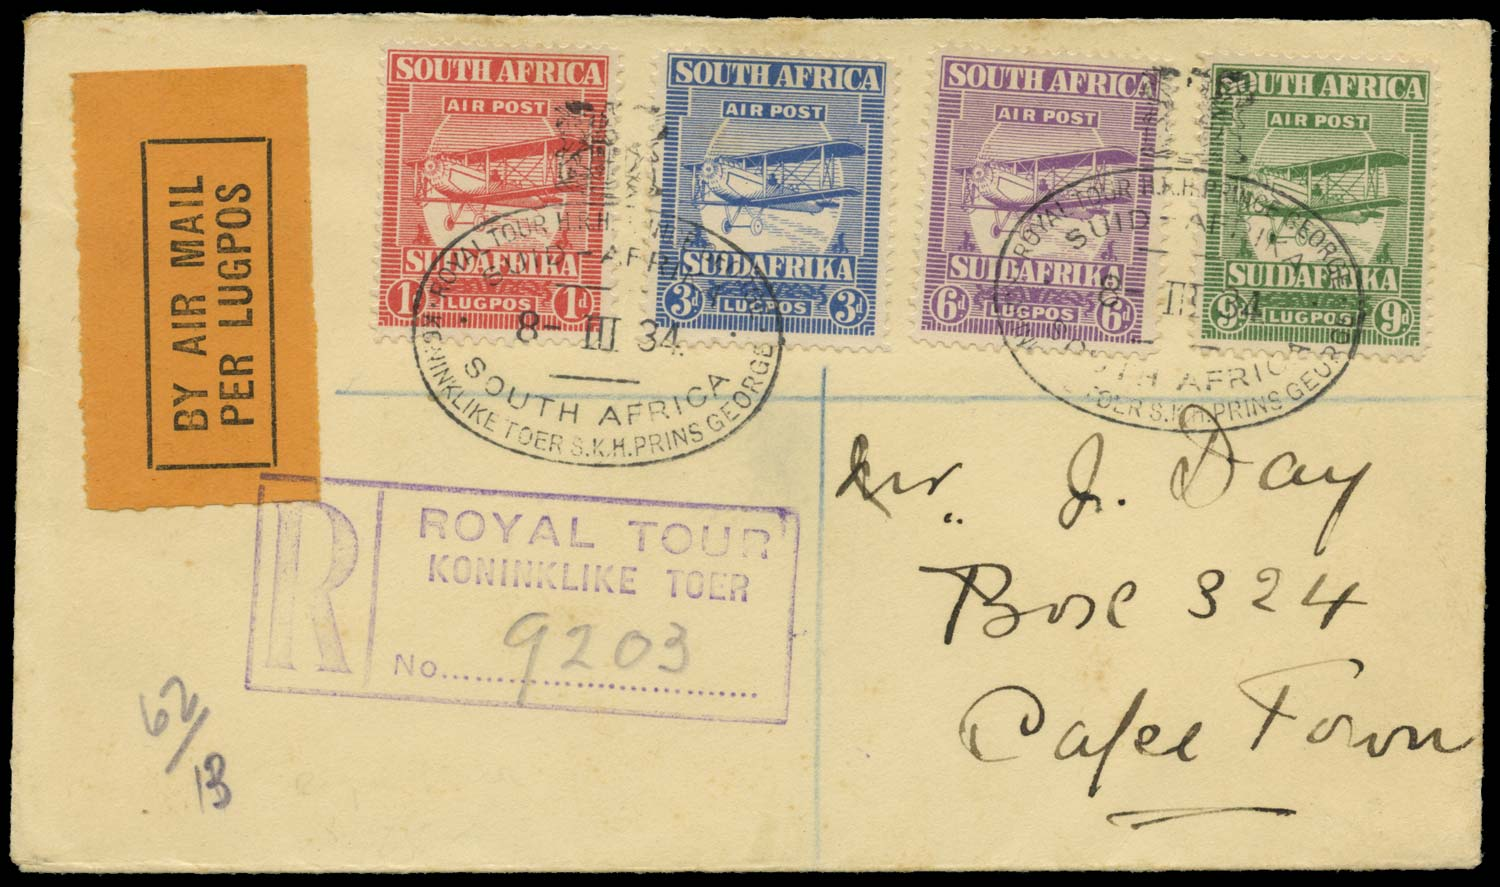 SOUTH AFRICA 1934  SG26/29 Cover Royal Tour registered airmail